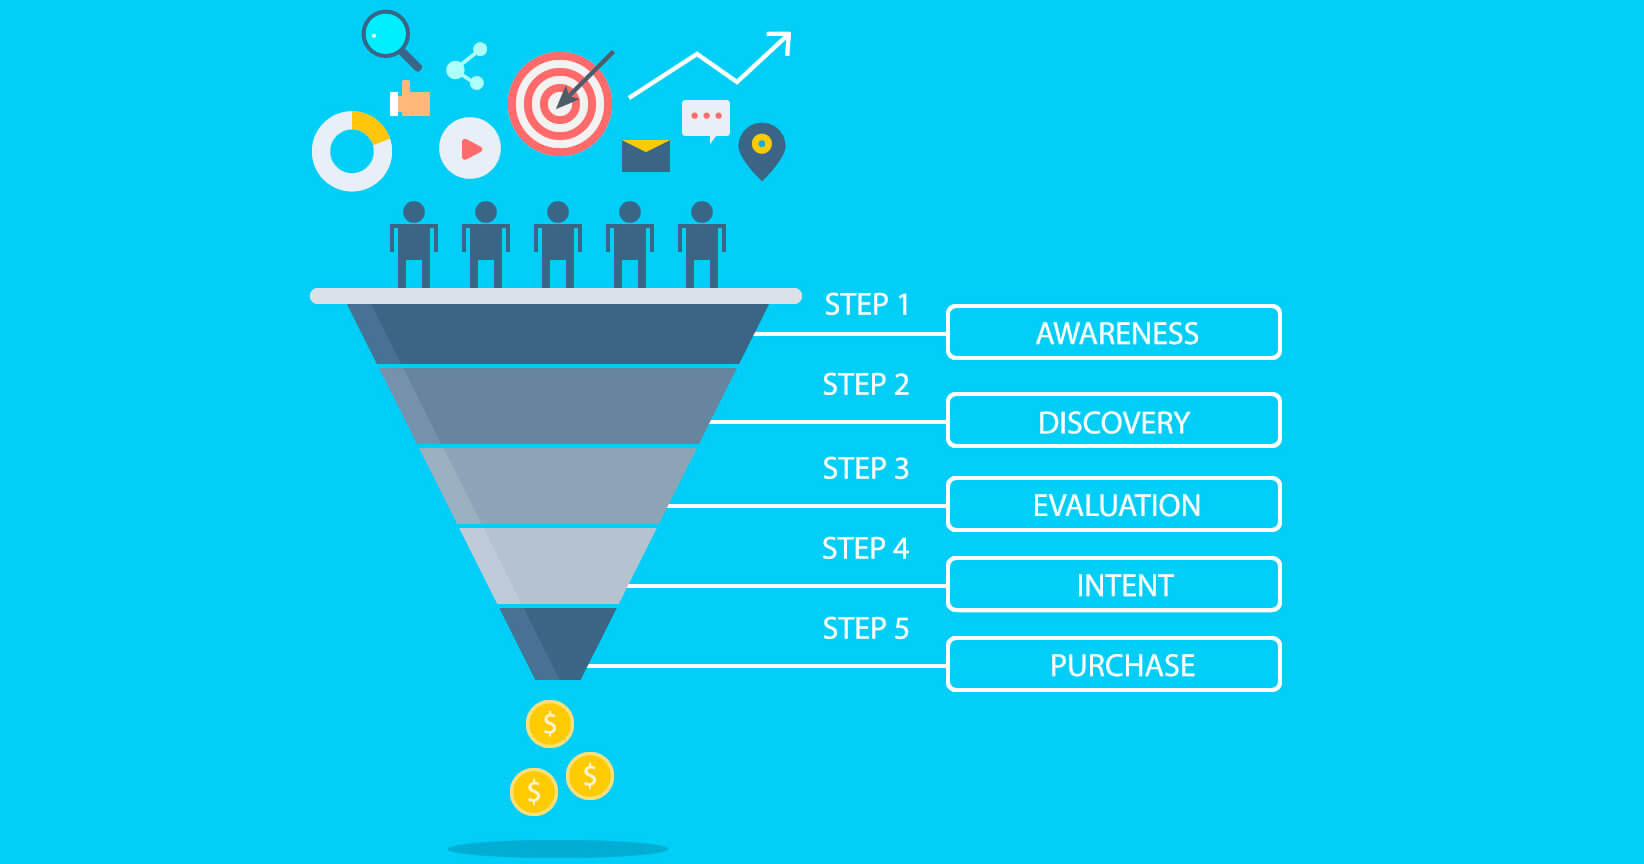 Elements of a conversion funnel